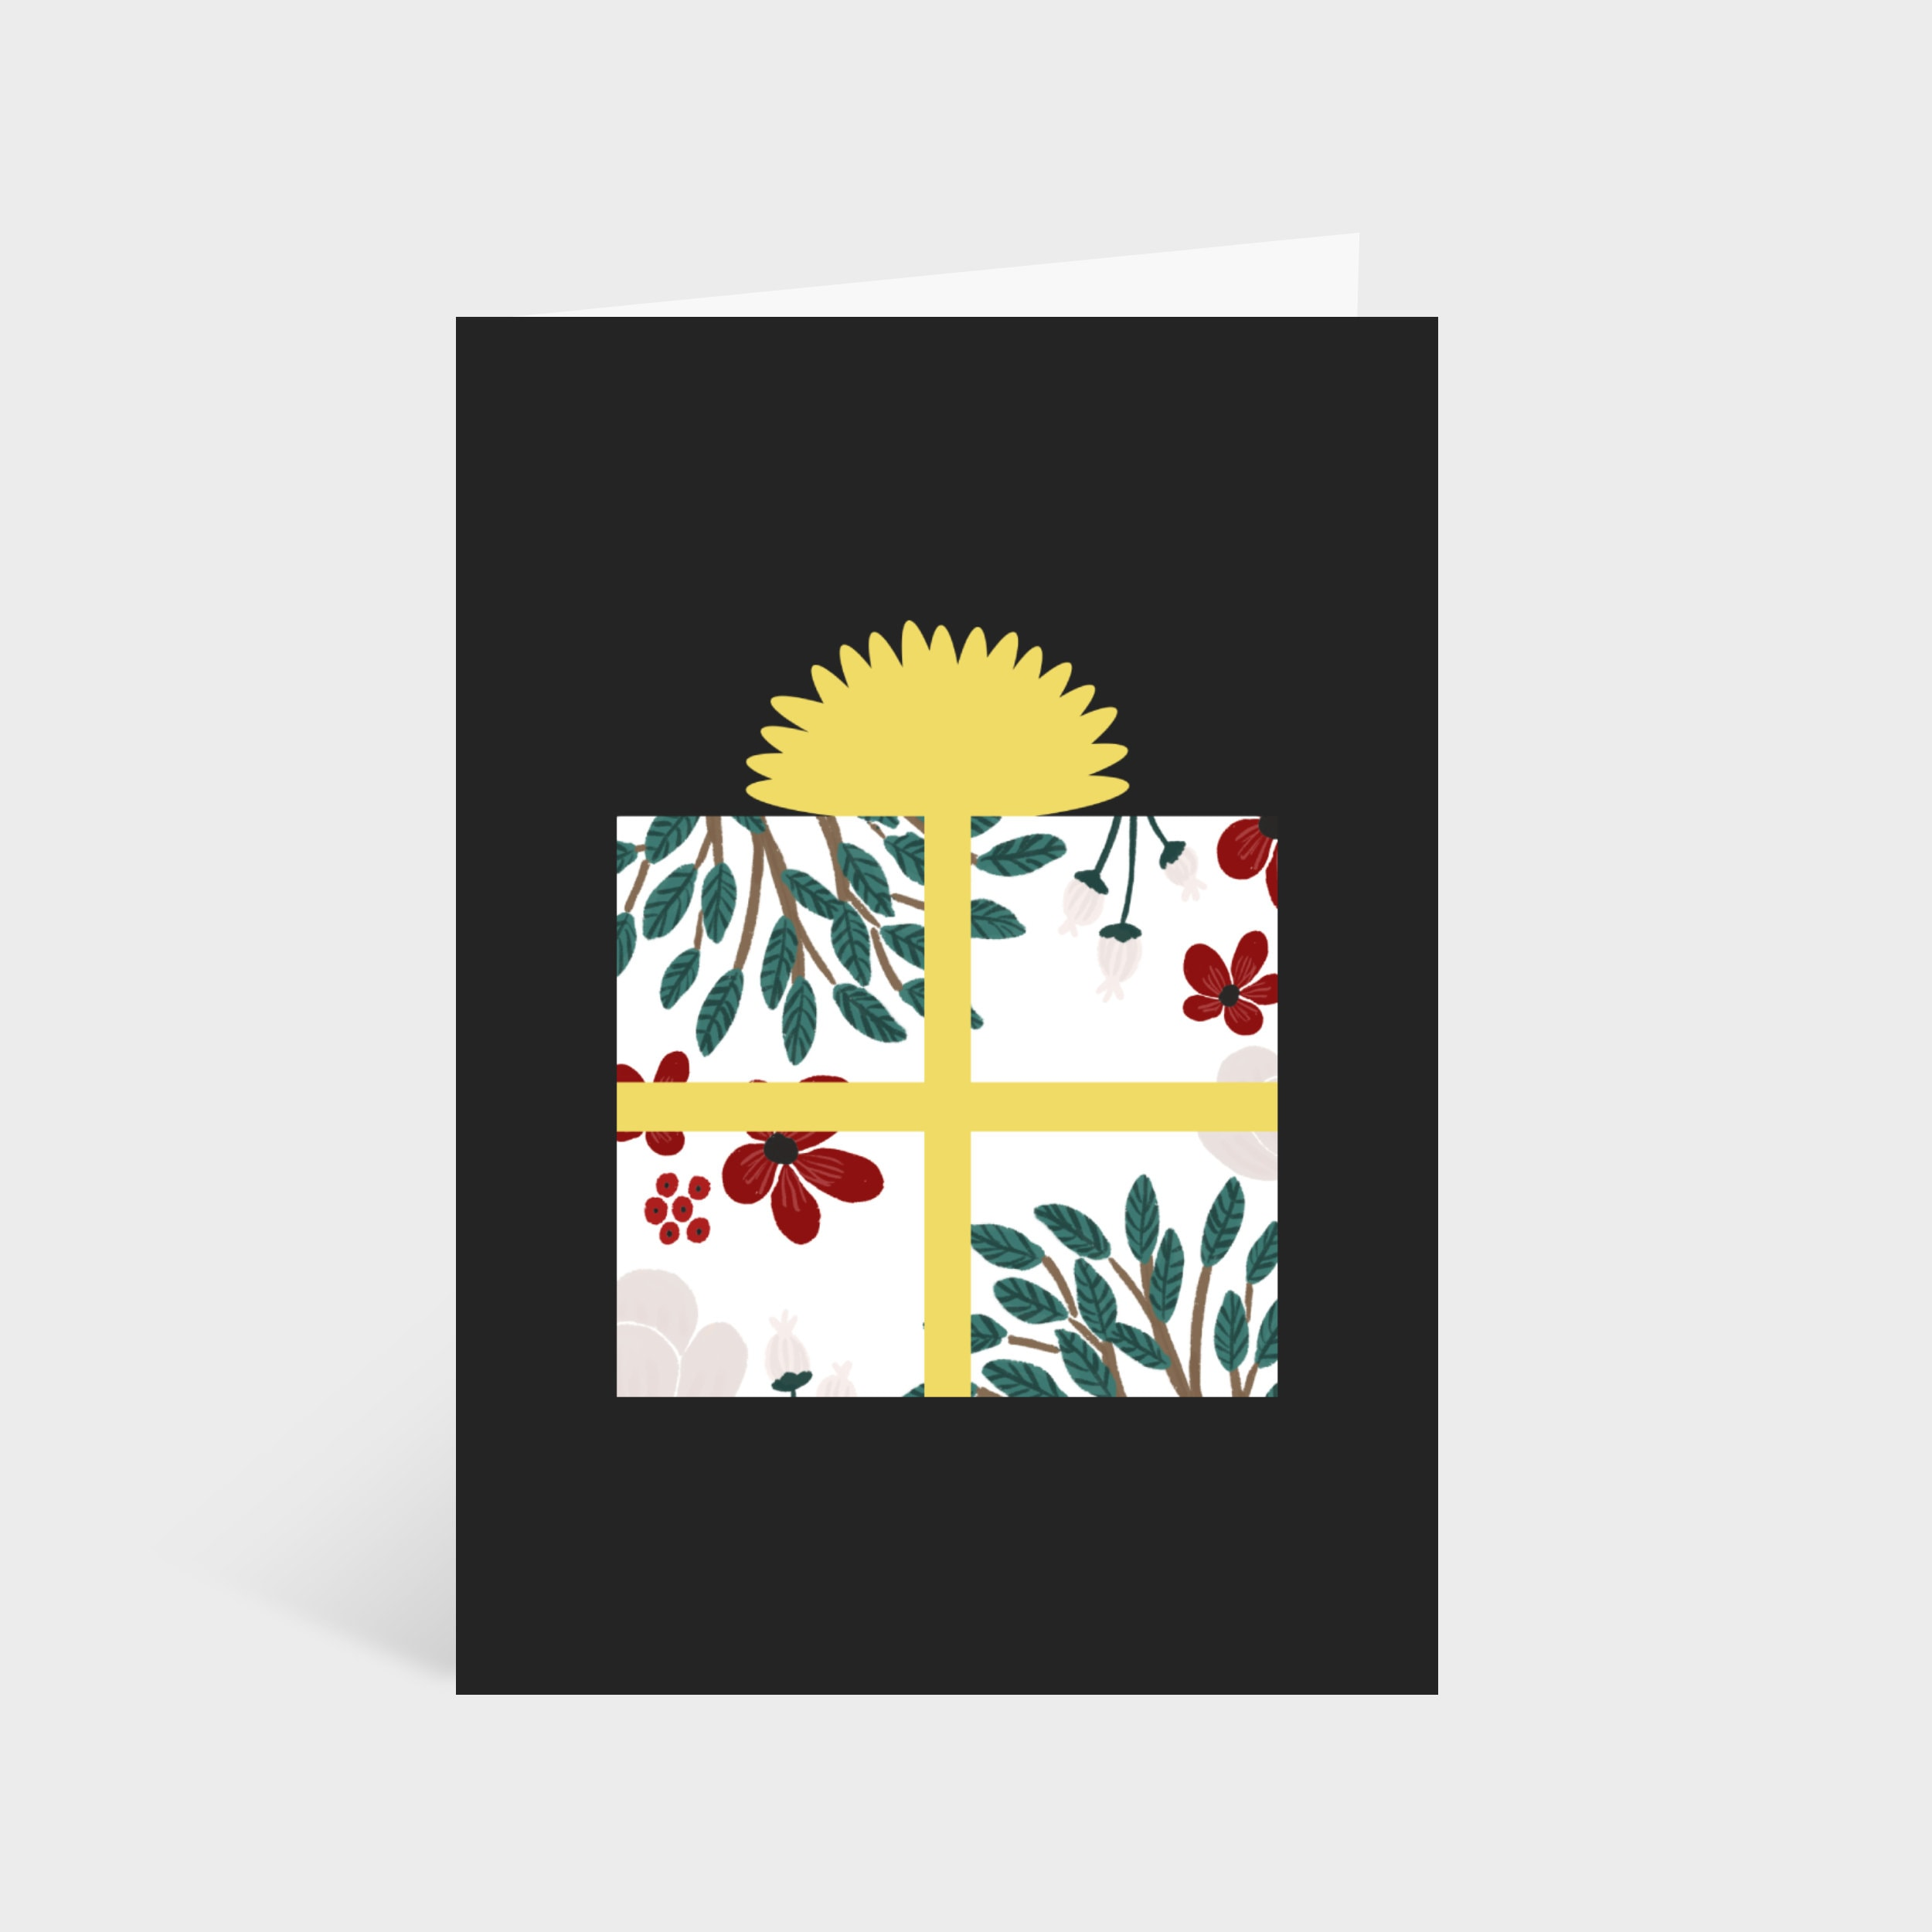 Standing black card with illustrated white and floral present in the centre.